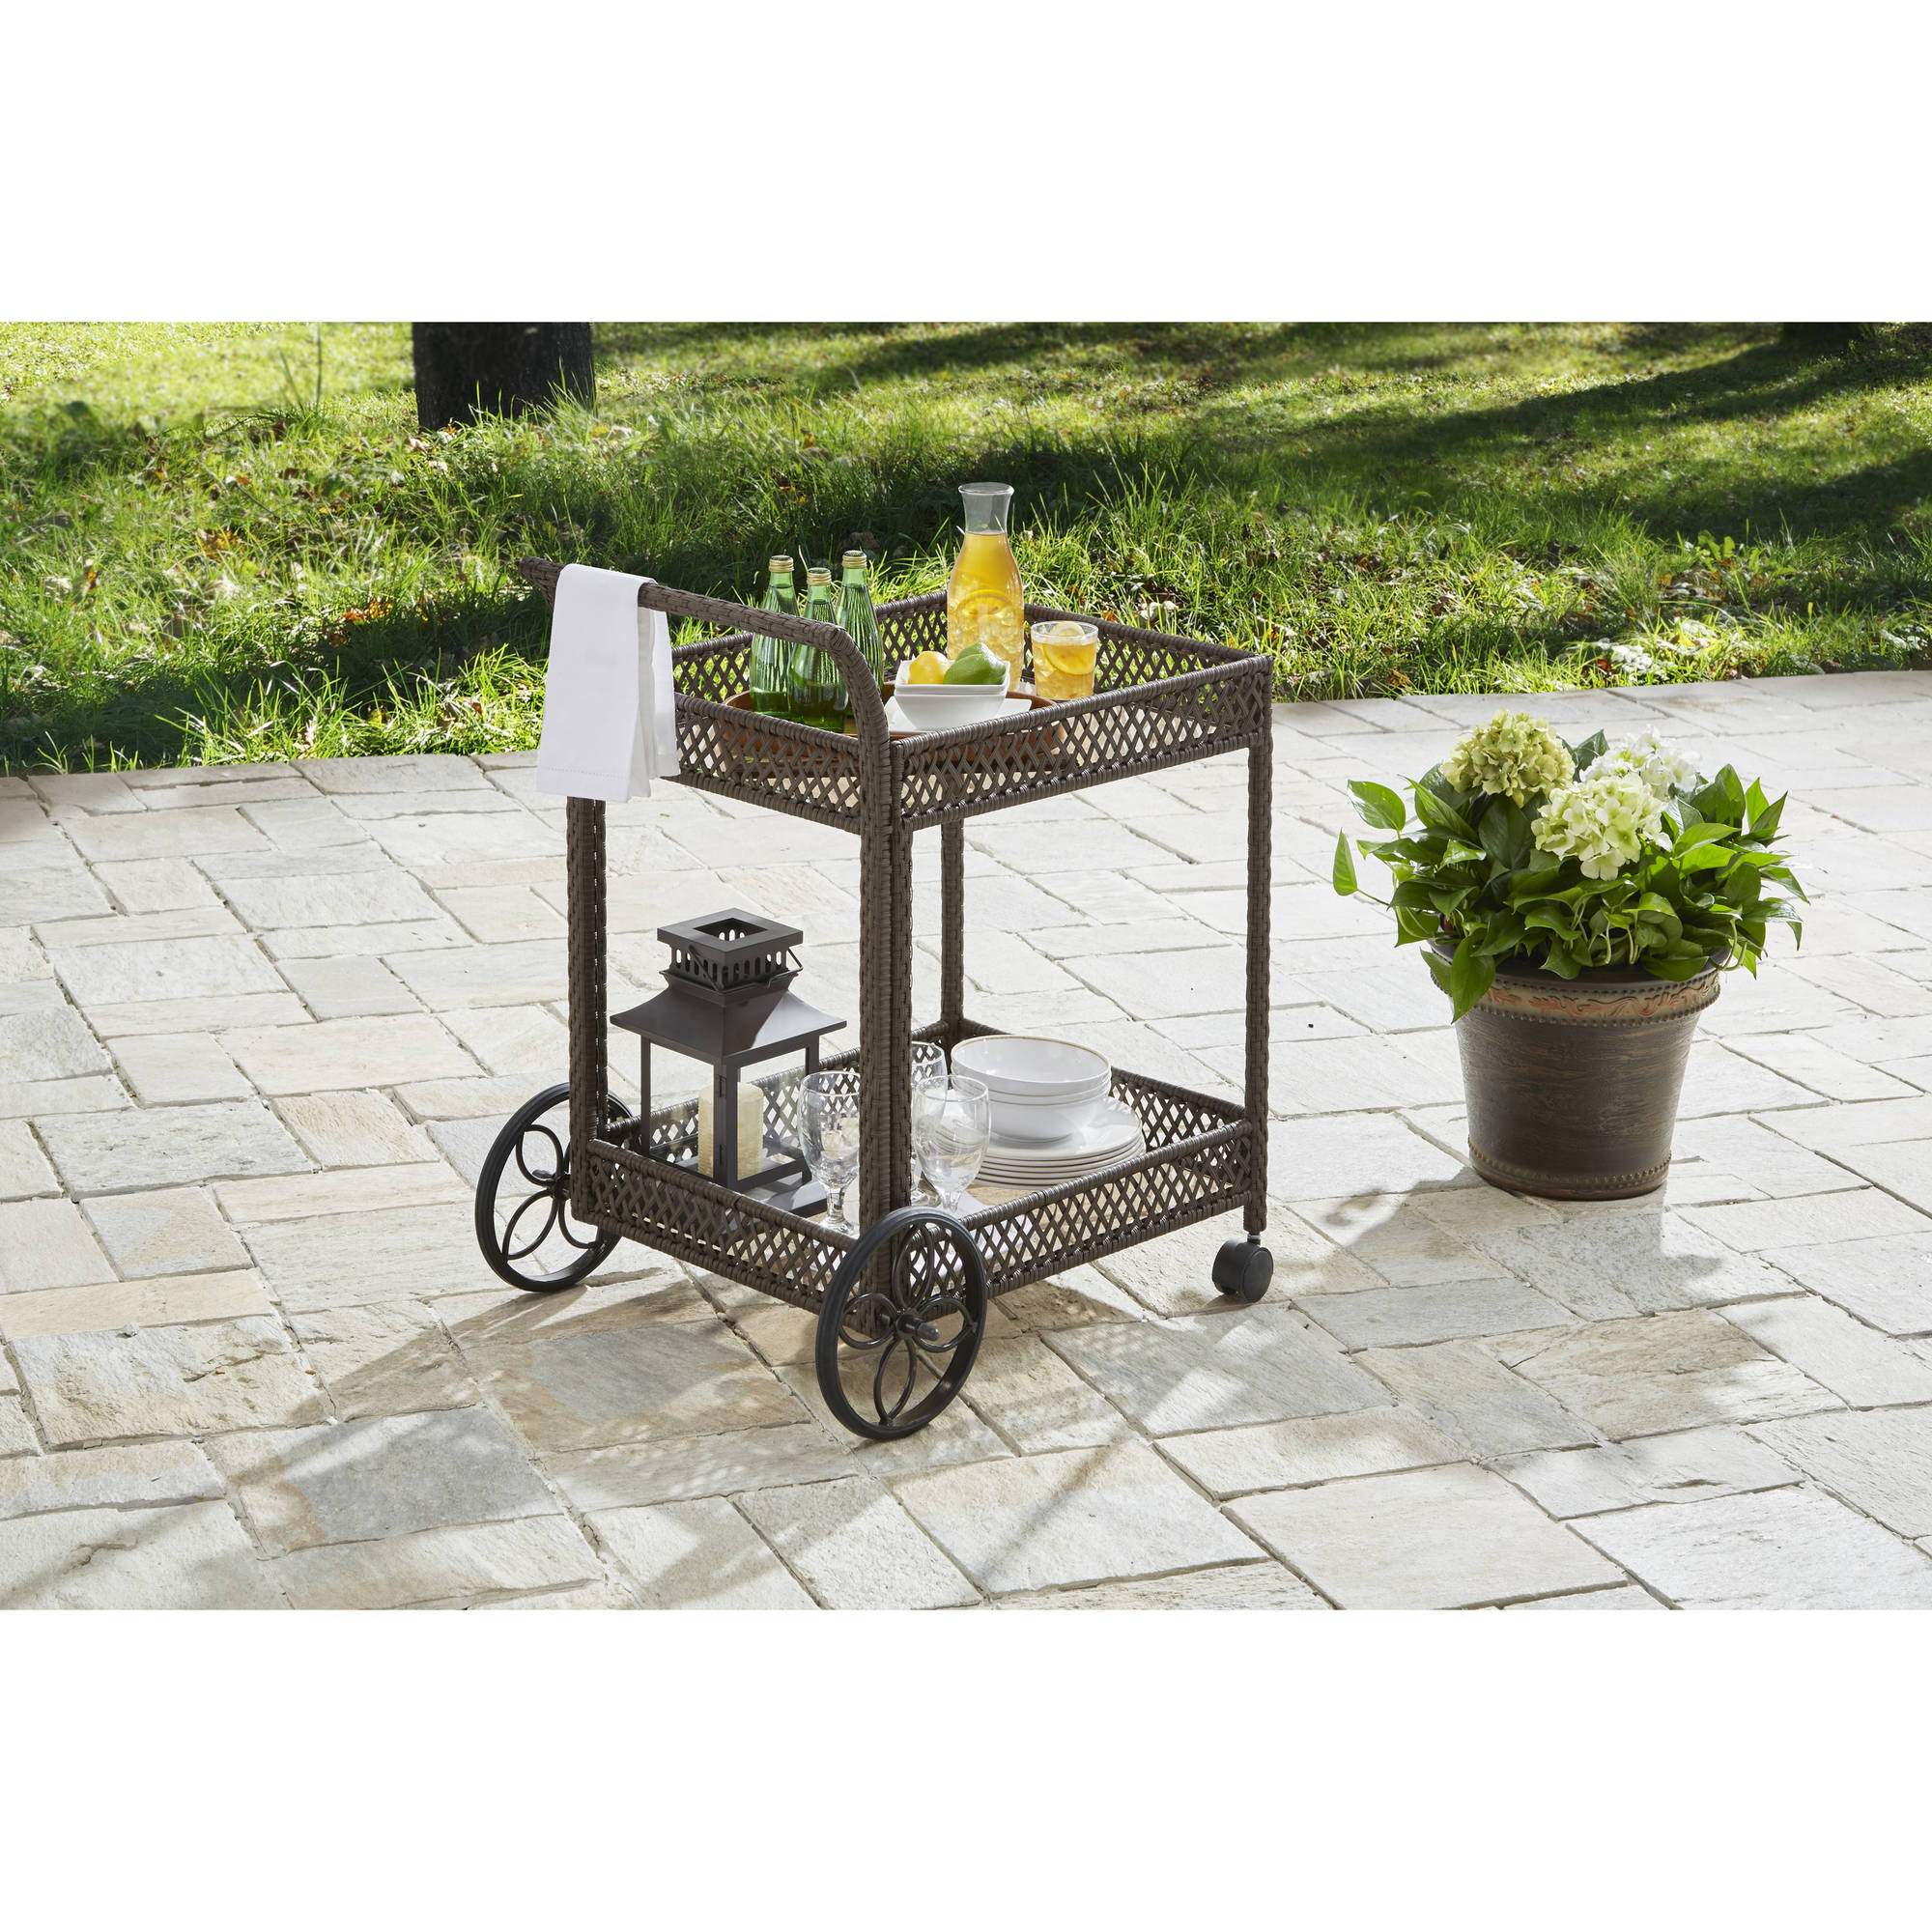 Better Homes and Gardens Colebrook Outdoor Serving Cart by Zhejiang Huayue Furniture